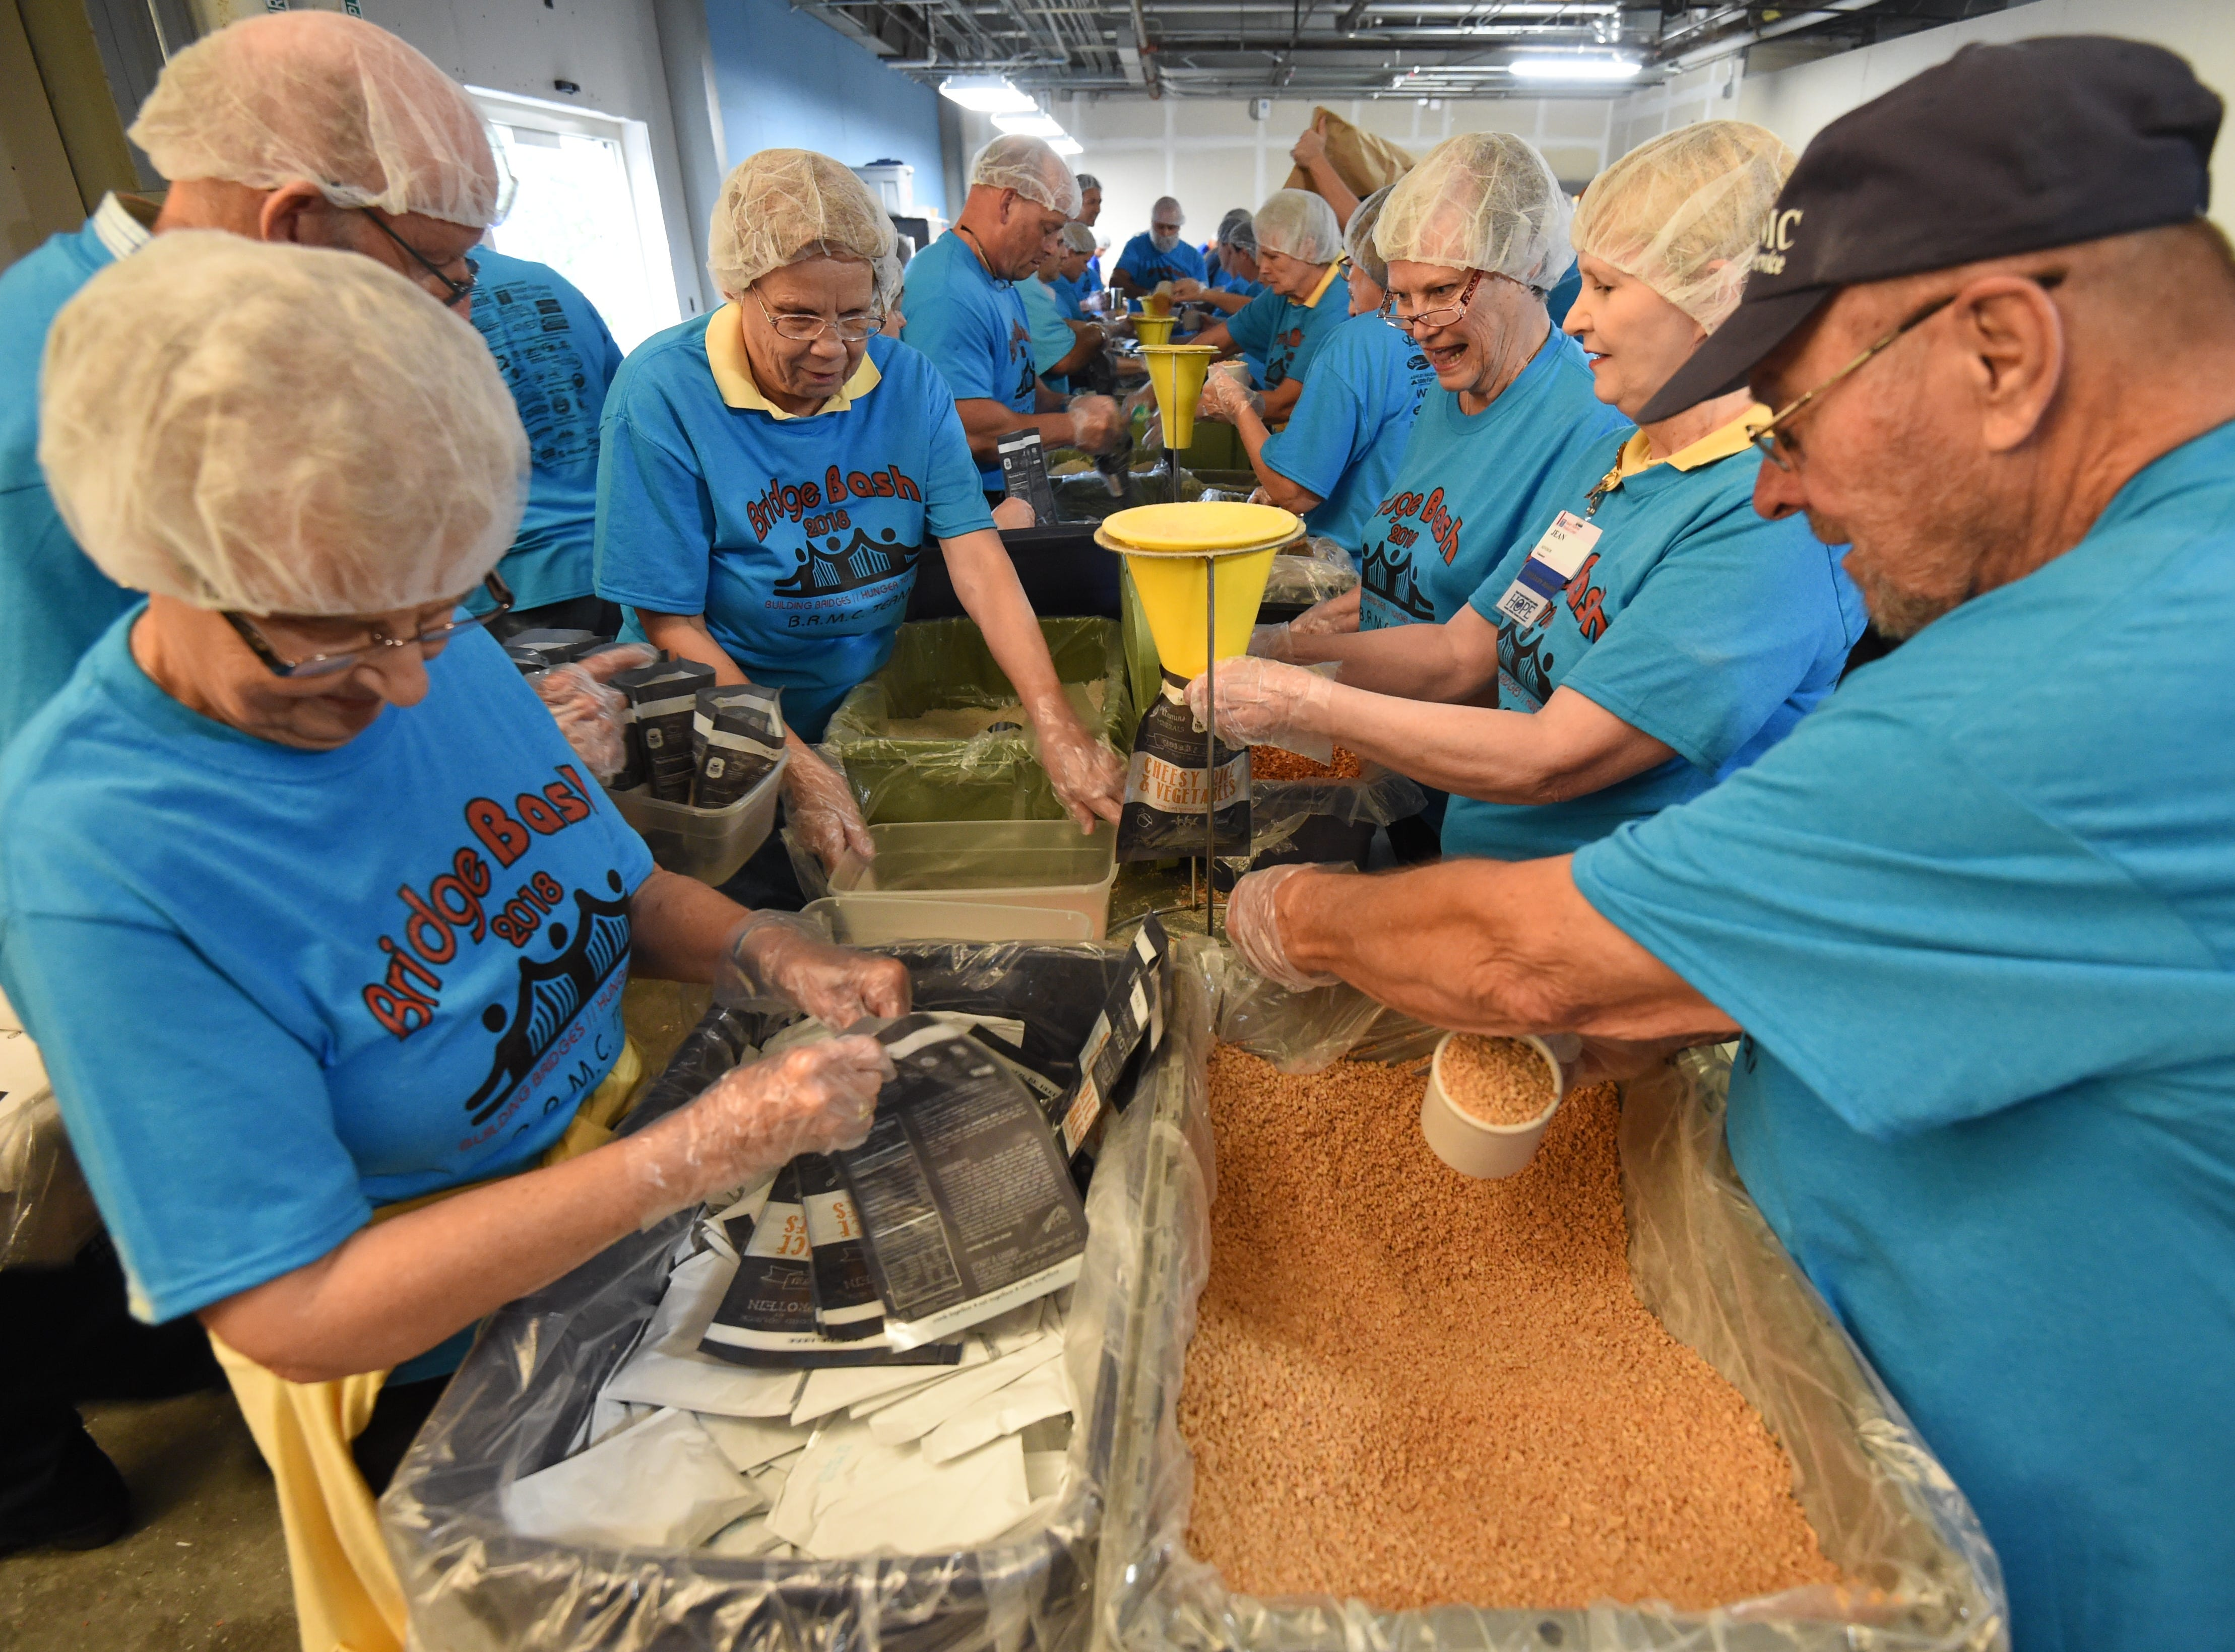 A scene from the 2018 Bridge Bash where several hundred thousand meals were gathered for those in need.